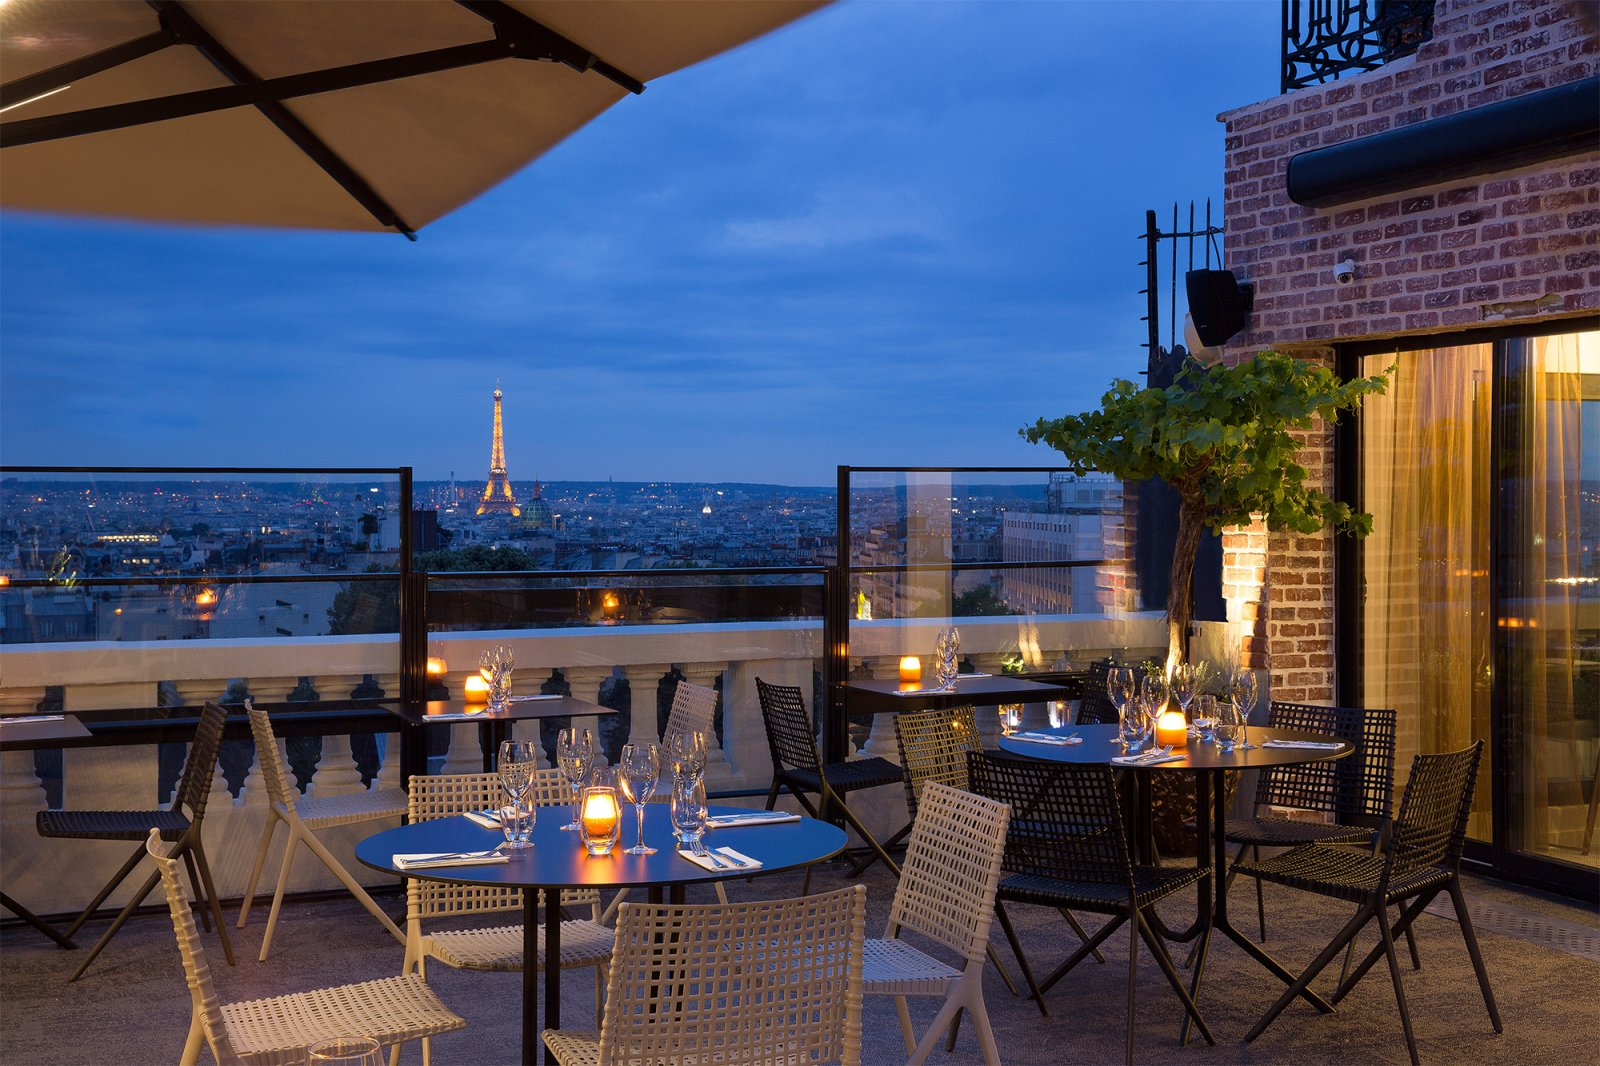 Hotels in Montmartre